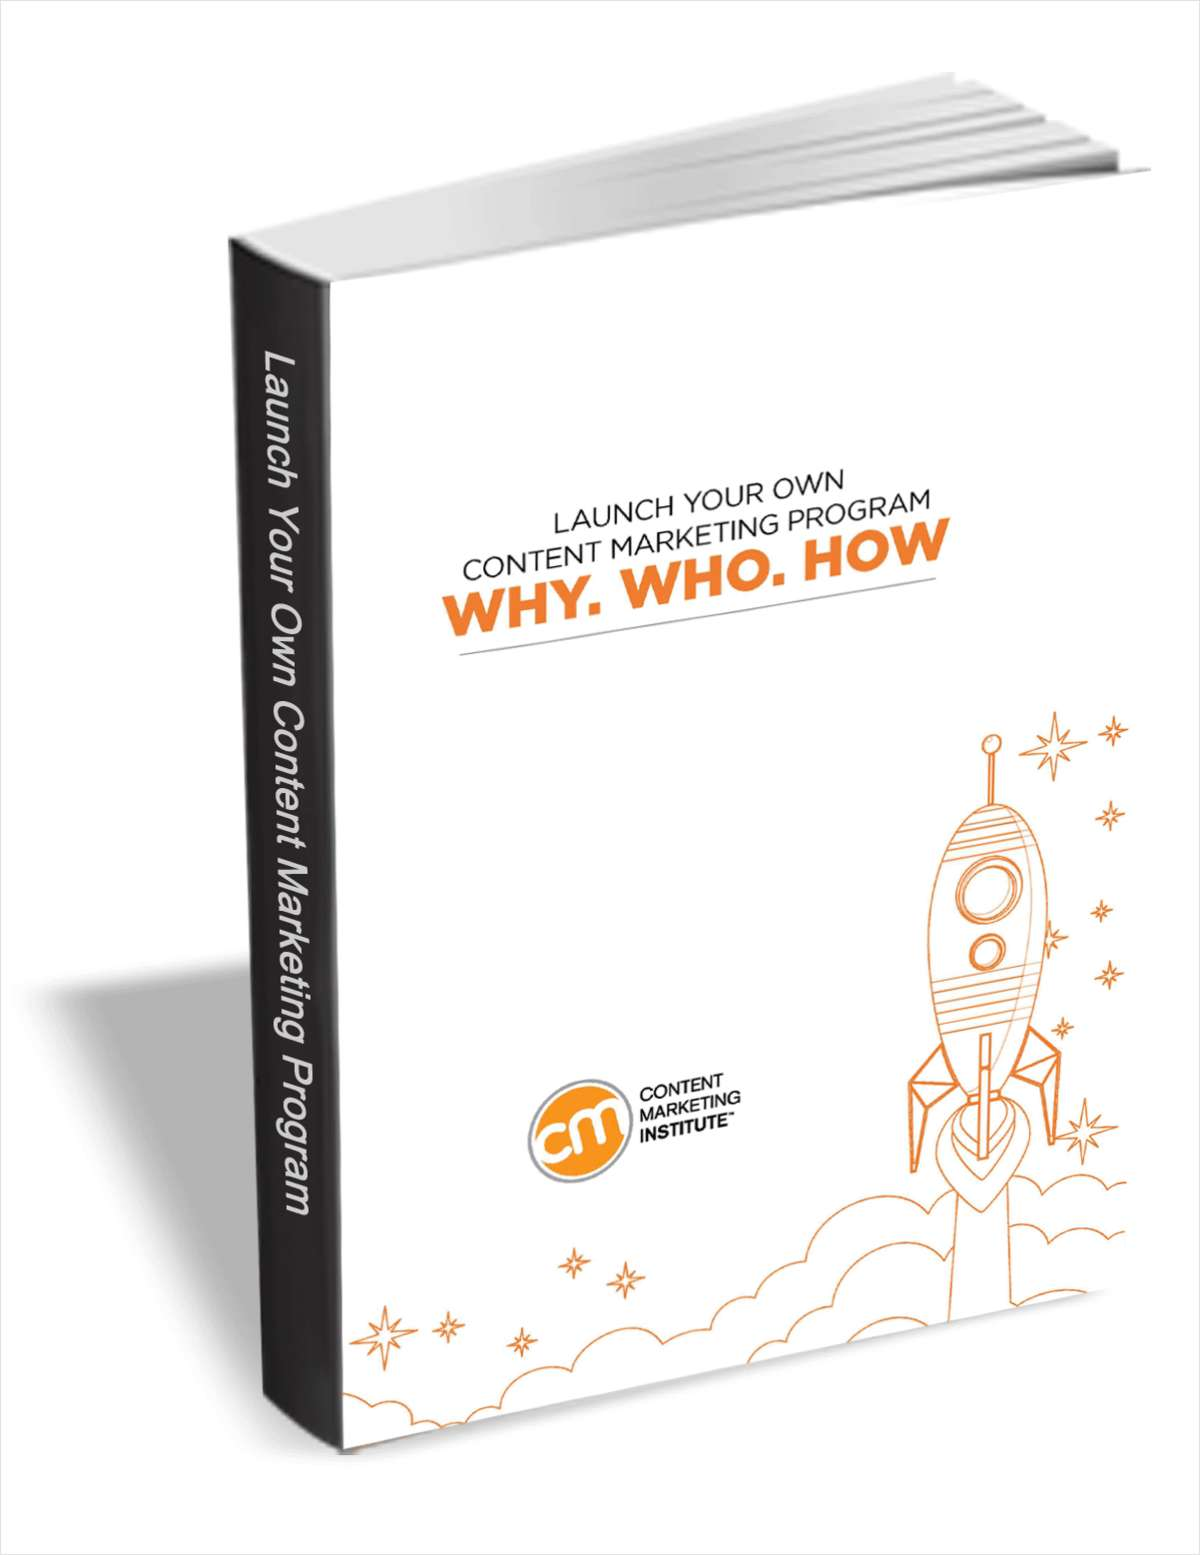 Launch Your Own Content Marketing Program